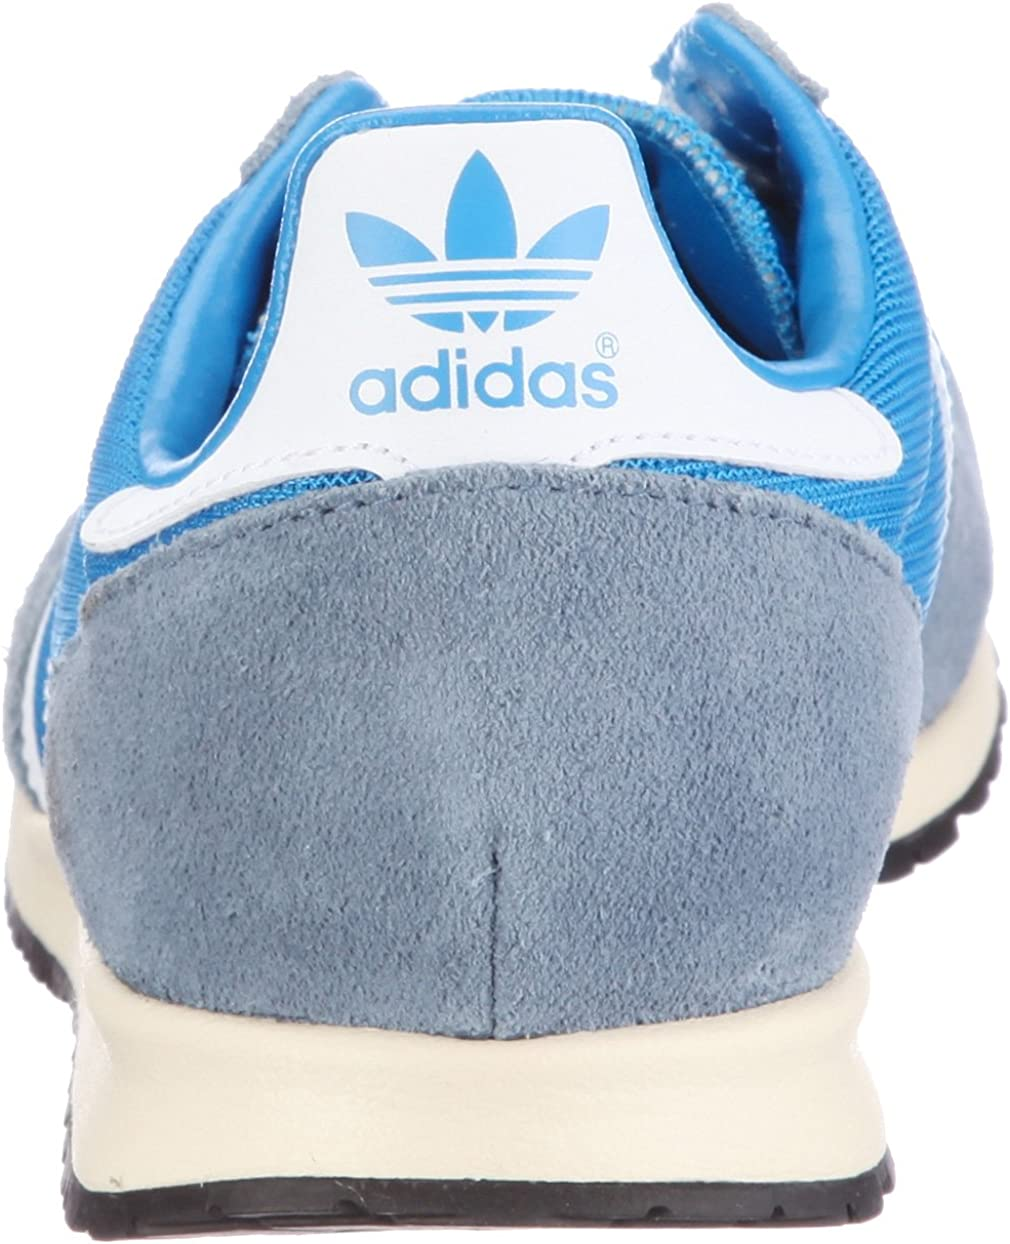 adidas Originals Adistar Racer, Sneakers Basses Mixte Adulte